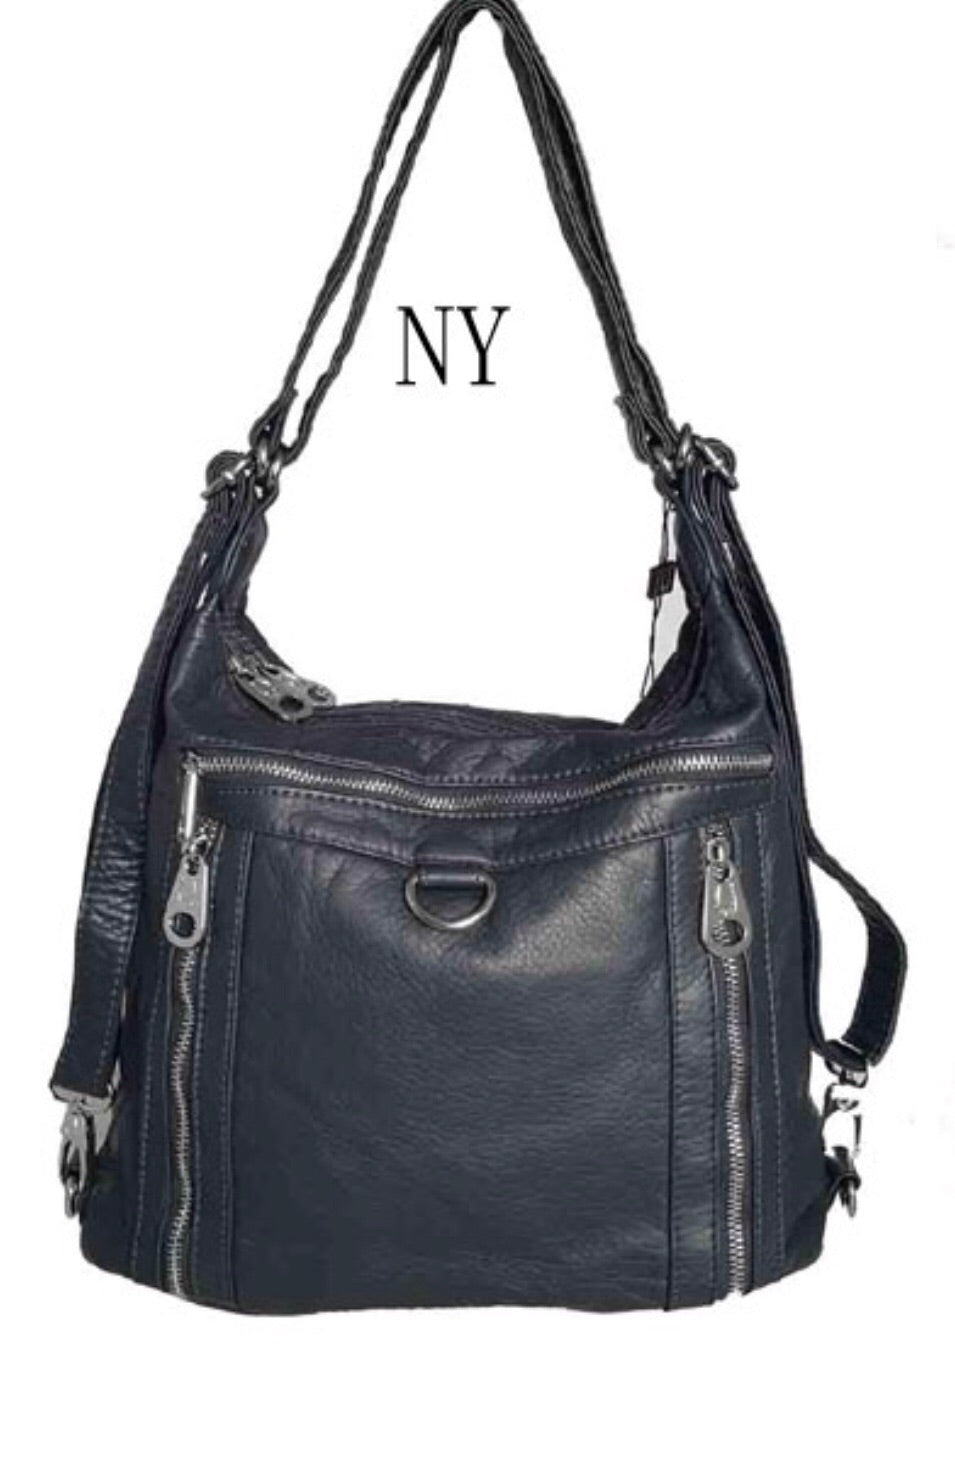 Navy 3 in 1 with metal loop backpack purse